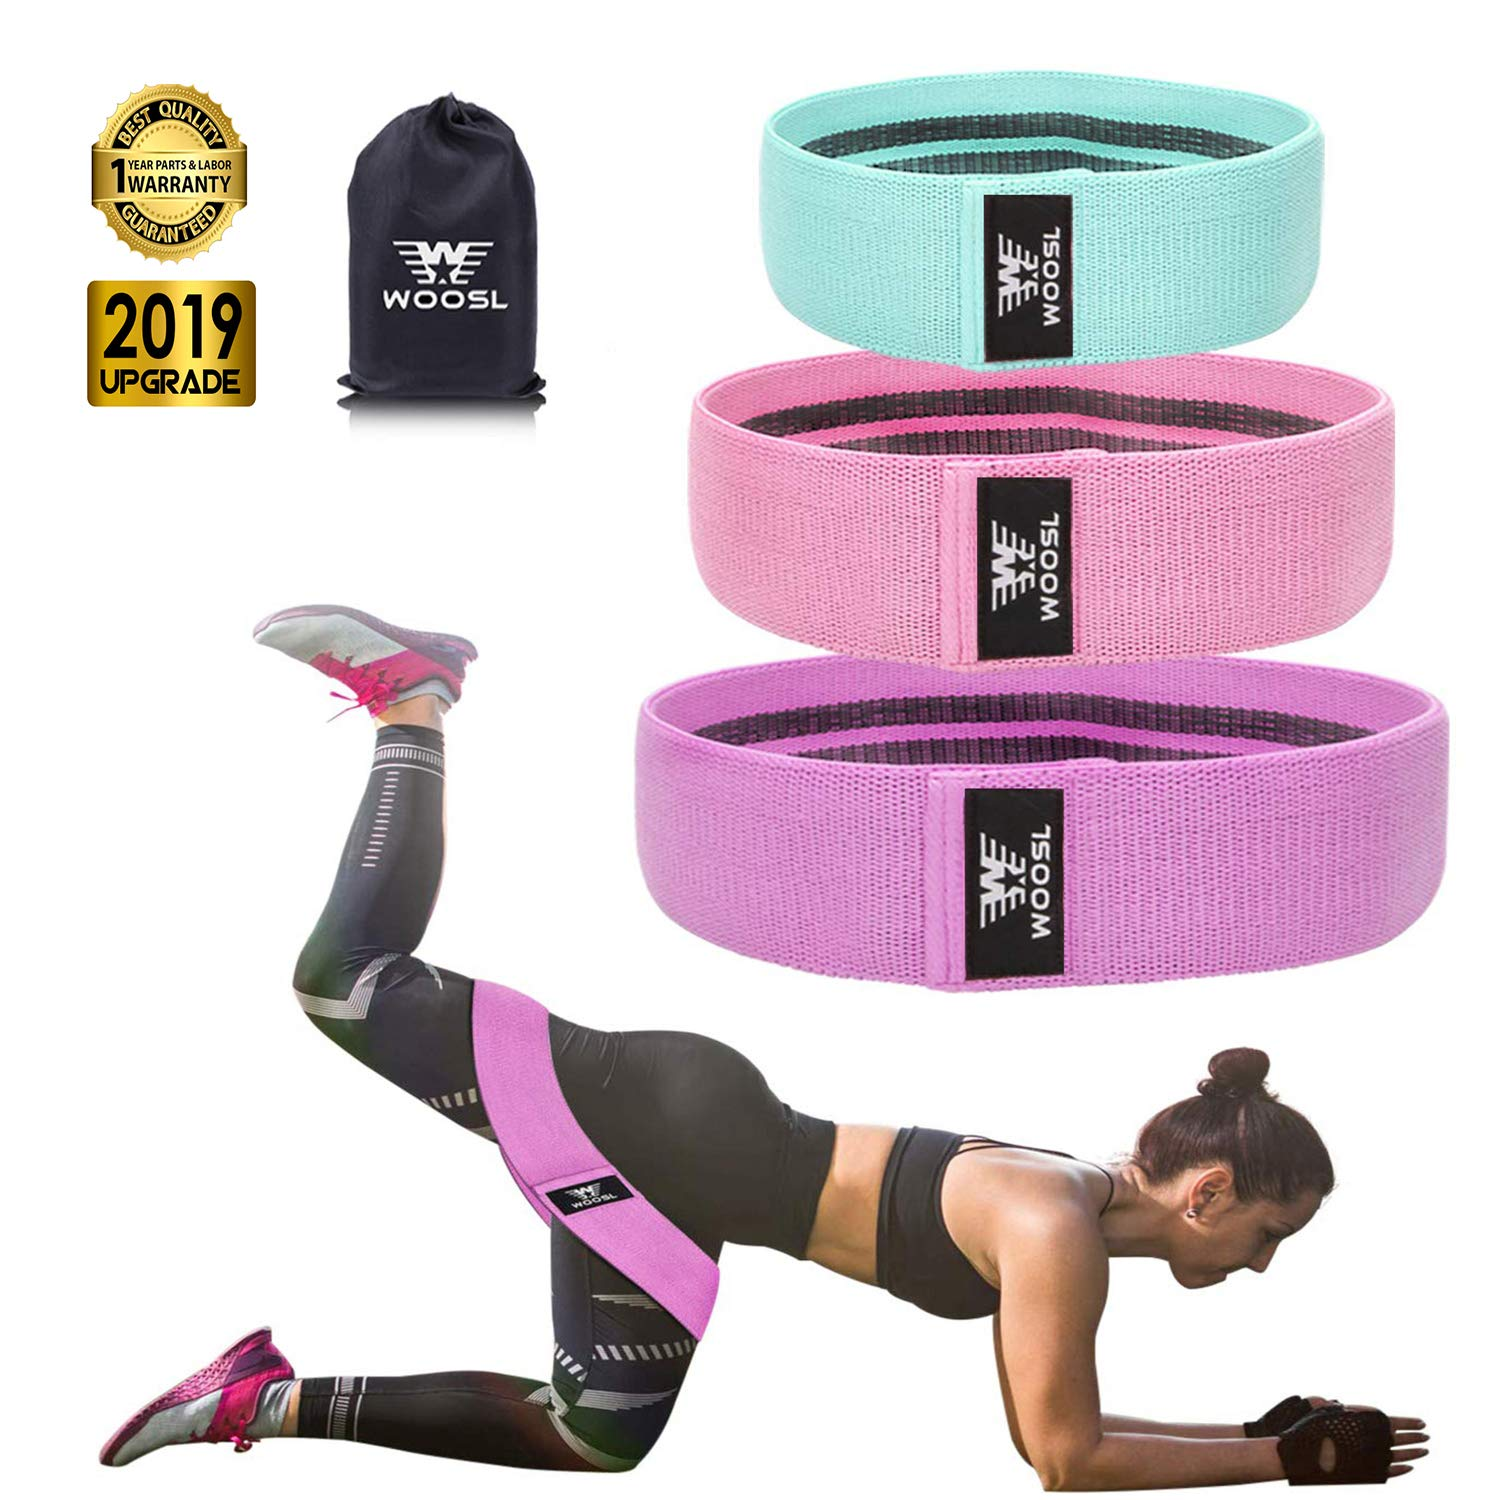 WOOSL Resistance Bands Booty Bands Loop Exercise Bands Workout Bands Hip Bands Booty Band with Fabric Anti-Slipping Glute Wide Resistance Bands for Legs and Butt Cotton Fitness Loop, Purple by WOOSL (Image #1)